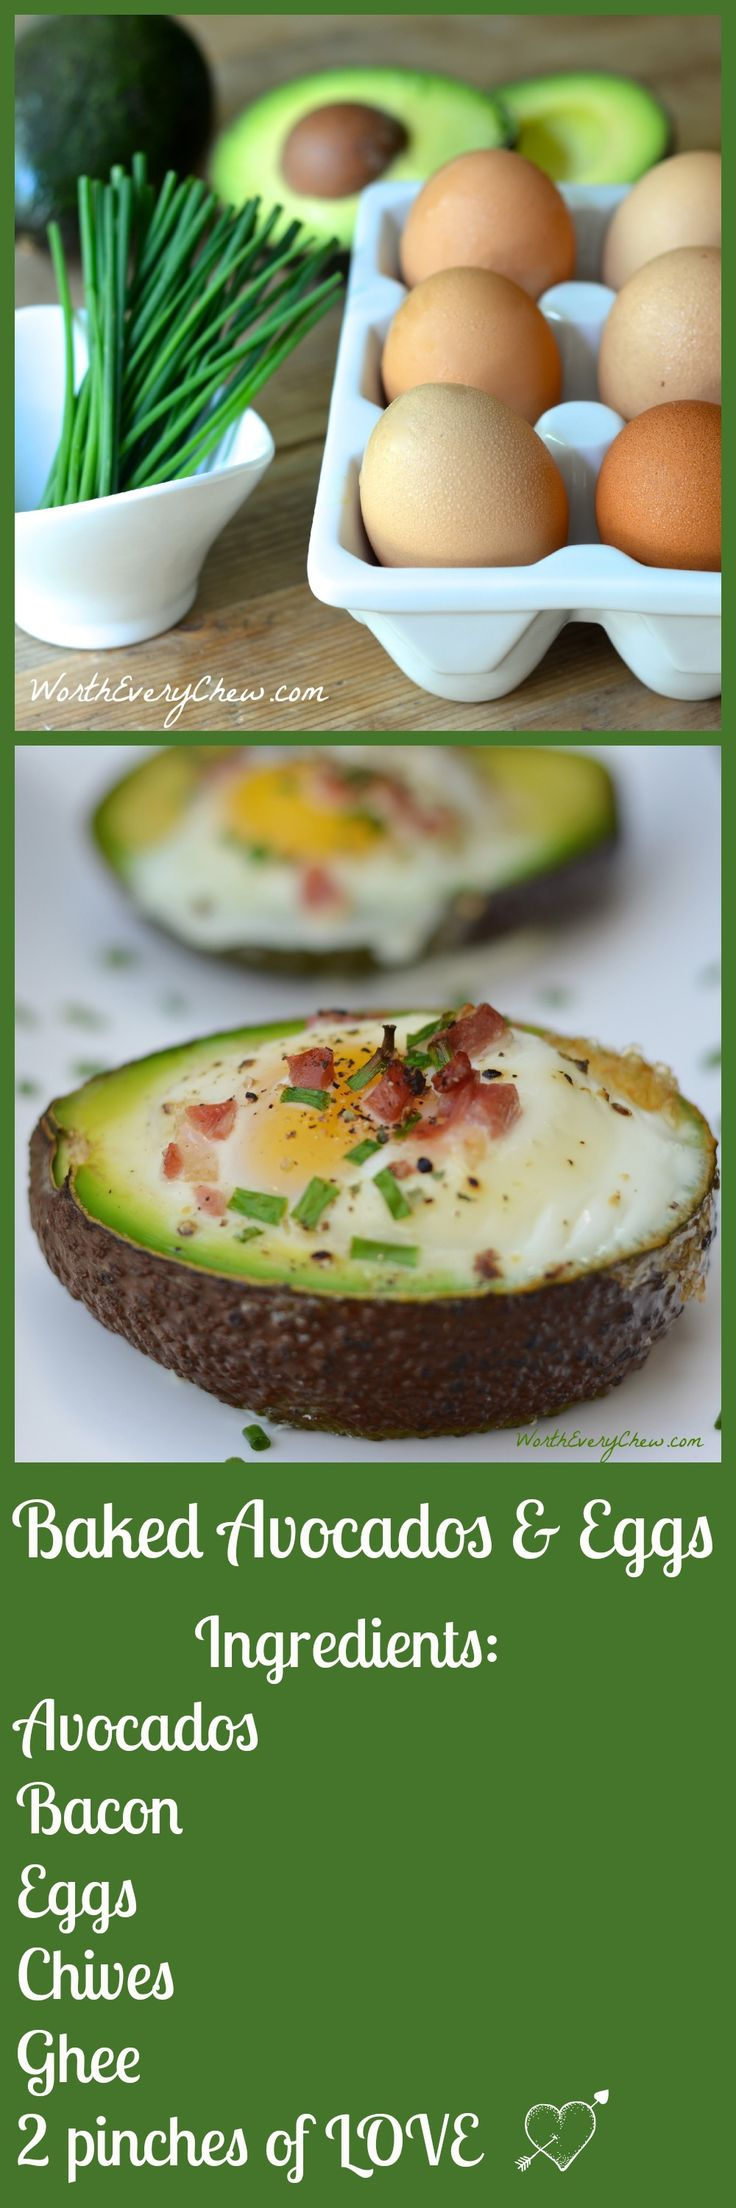 Baked Avocado Eggs with Bacon & Chives from WorthEveryChew.com  Creamy avocados filled with crispy bacon, luscious eggs and delicious seasonings make these the perfect brunch idea! Paleo Approved, gluten free and ketogenic.